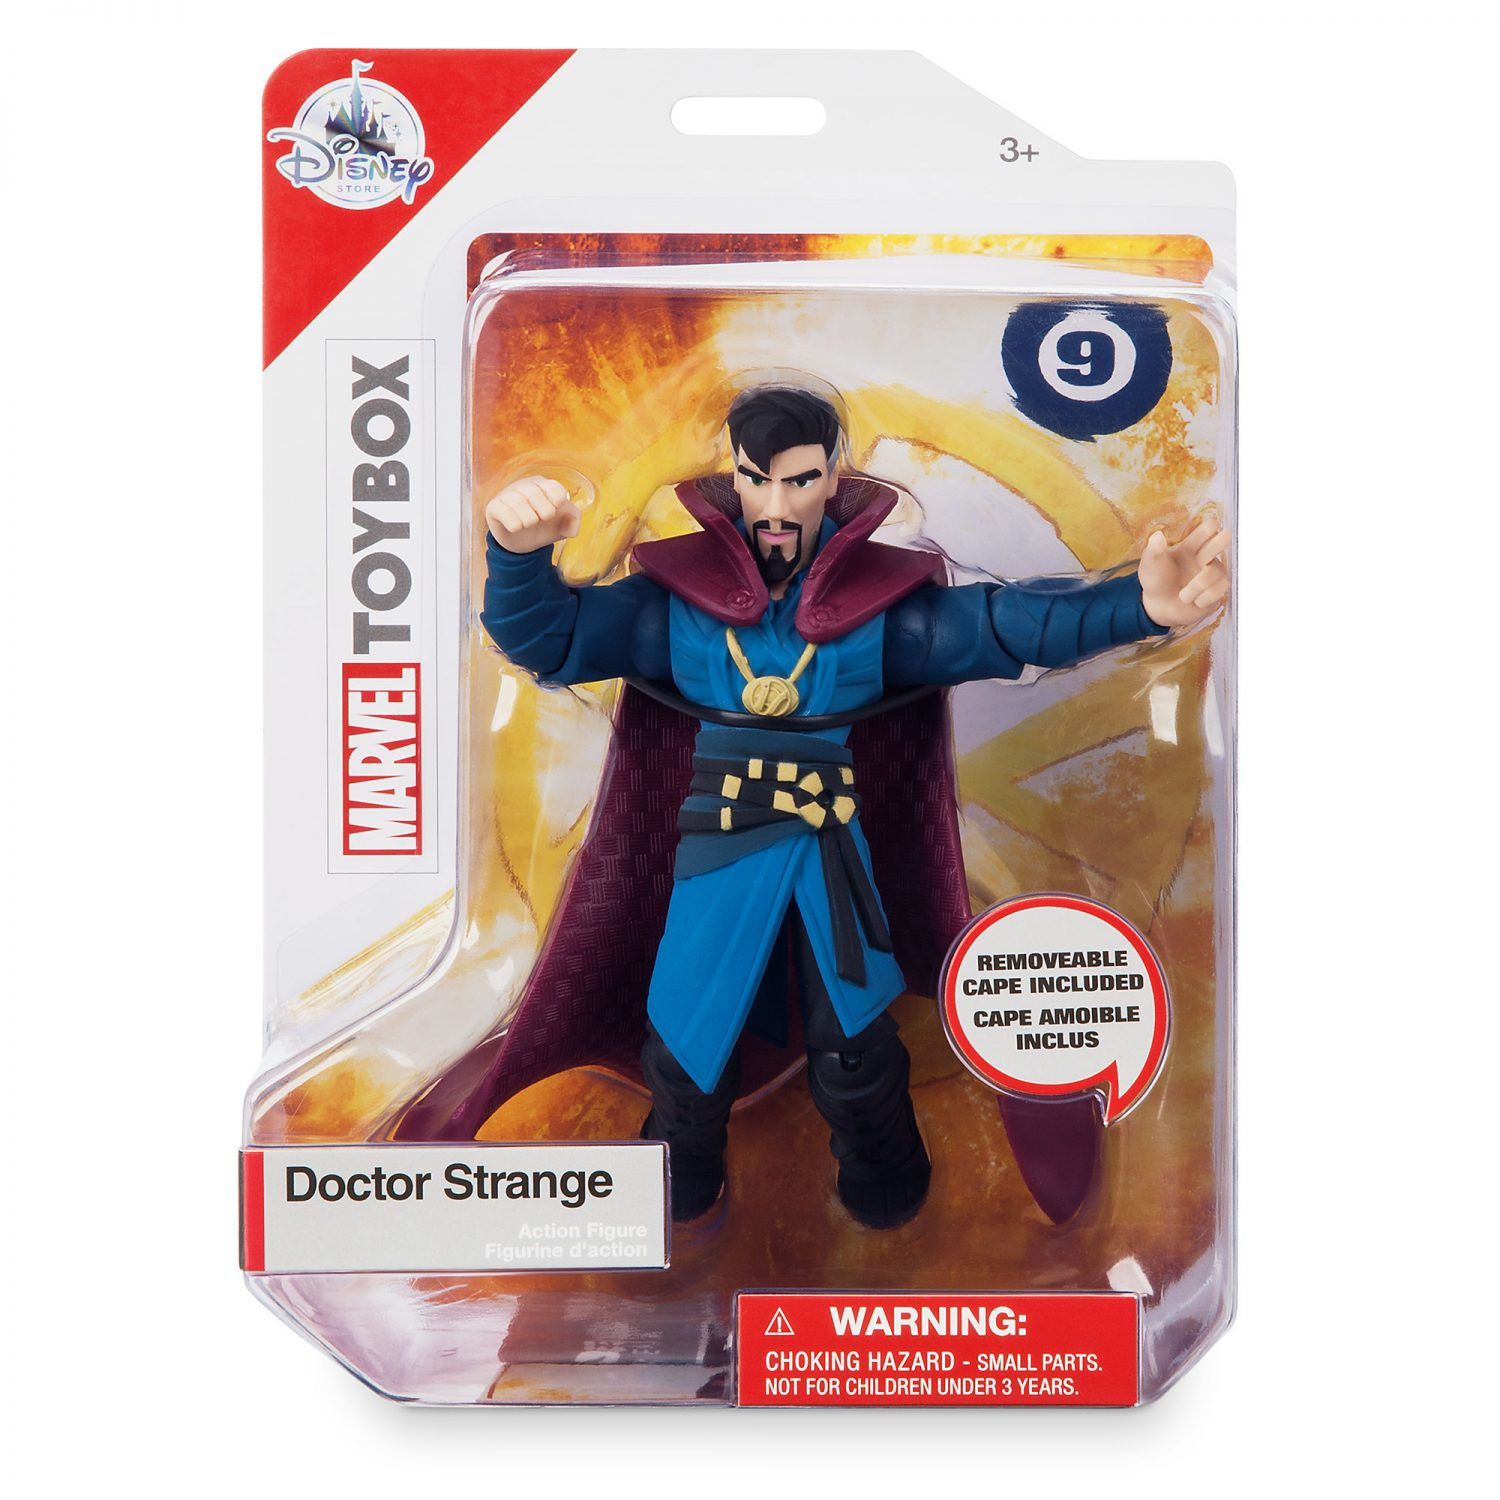 Disney Store Exclusive Dr. Strange & Incredibles 2 Violet Figures Available Now